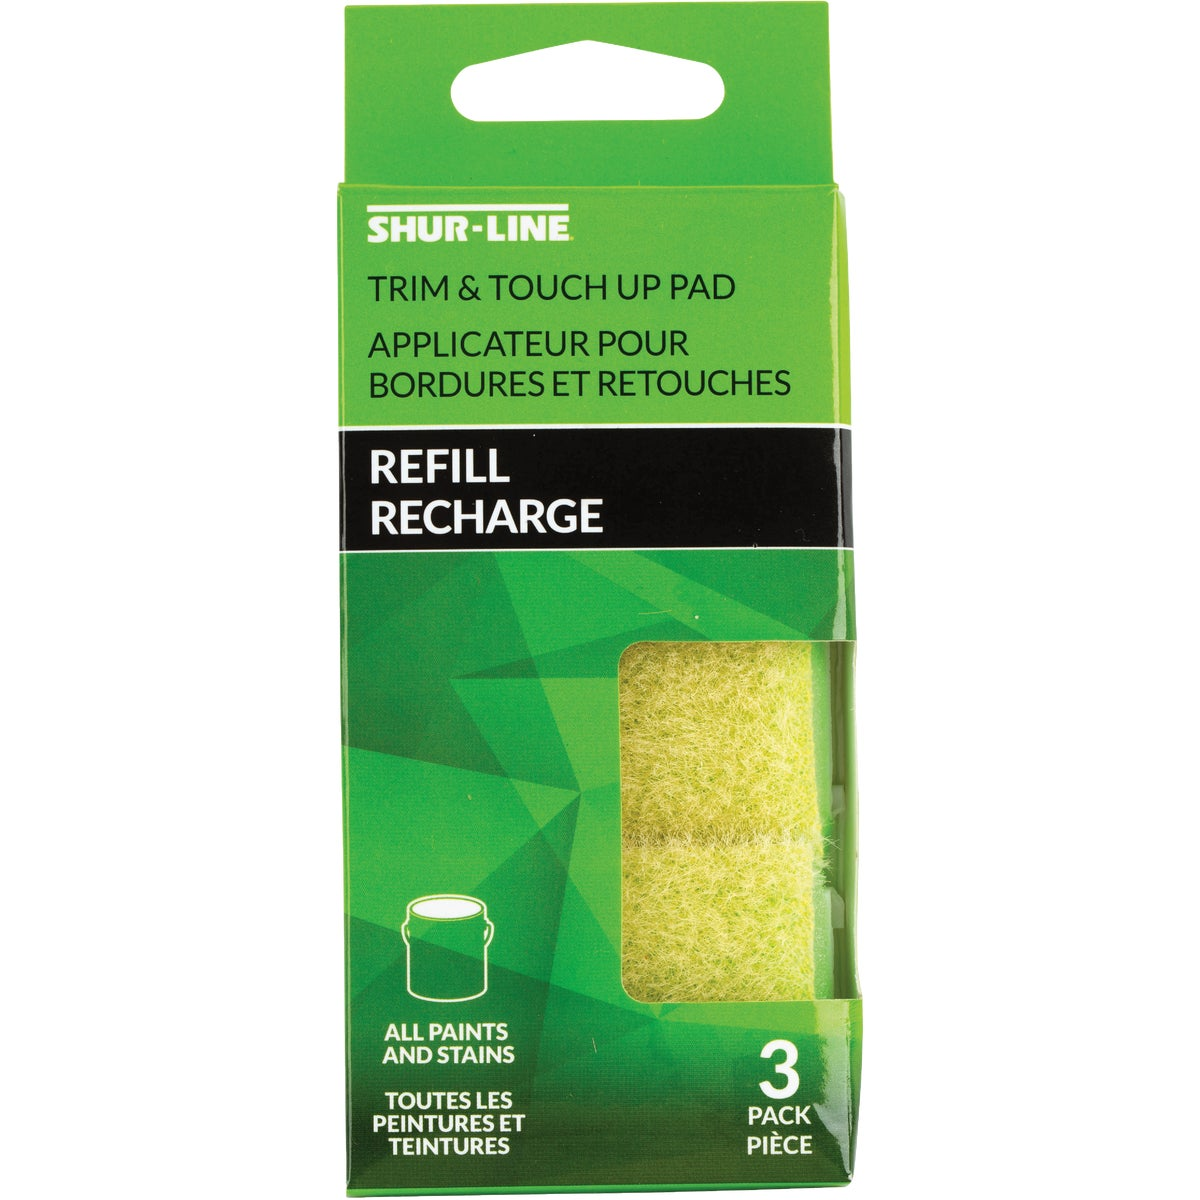 3PC REPLACE TRIM PADS - 01540 by Shur Line